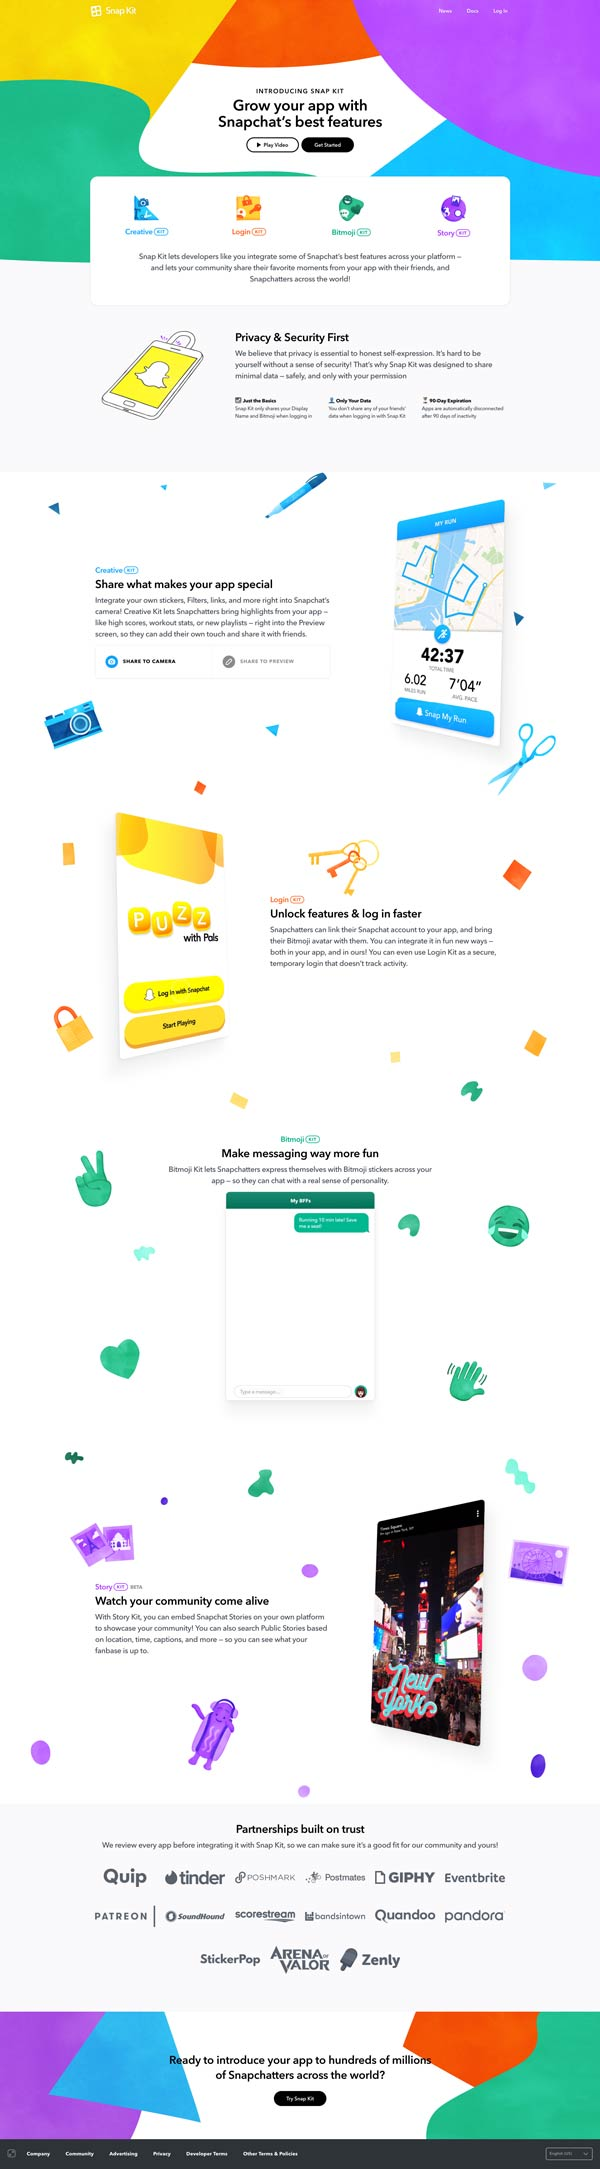 best-landing-page-examples-snapchat